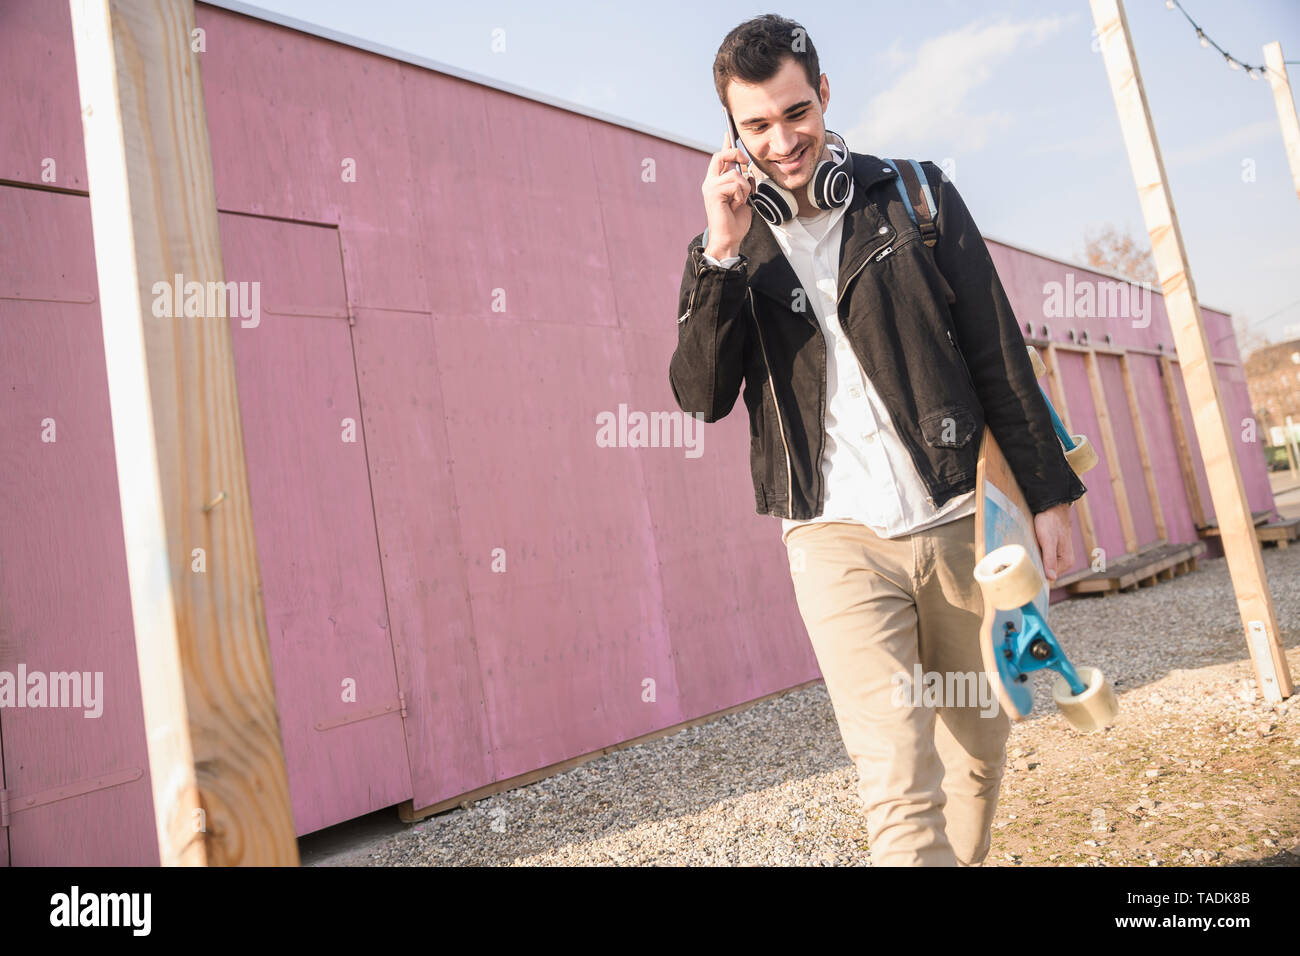 Young man with skatebaord and cell phone on the move - Stock Image